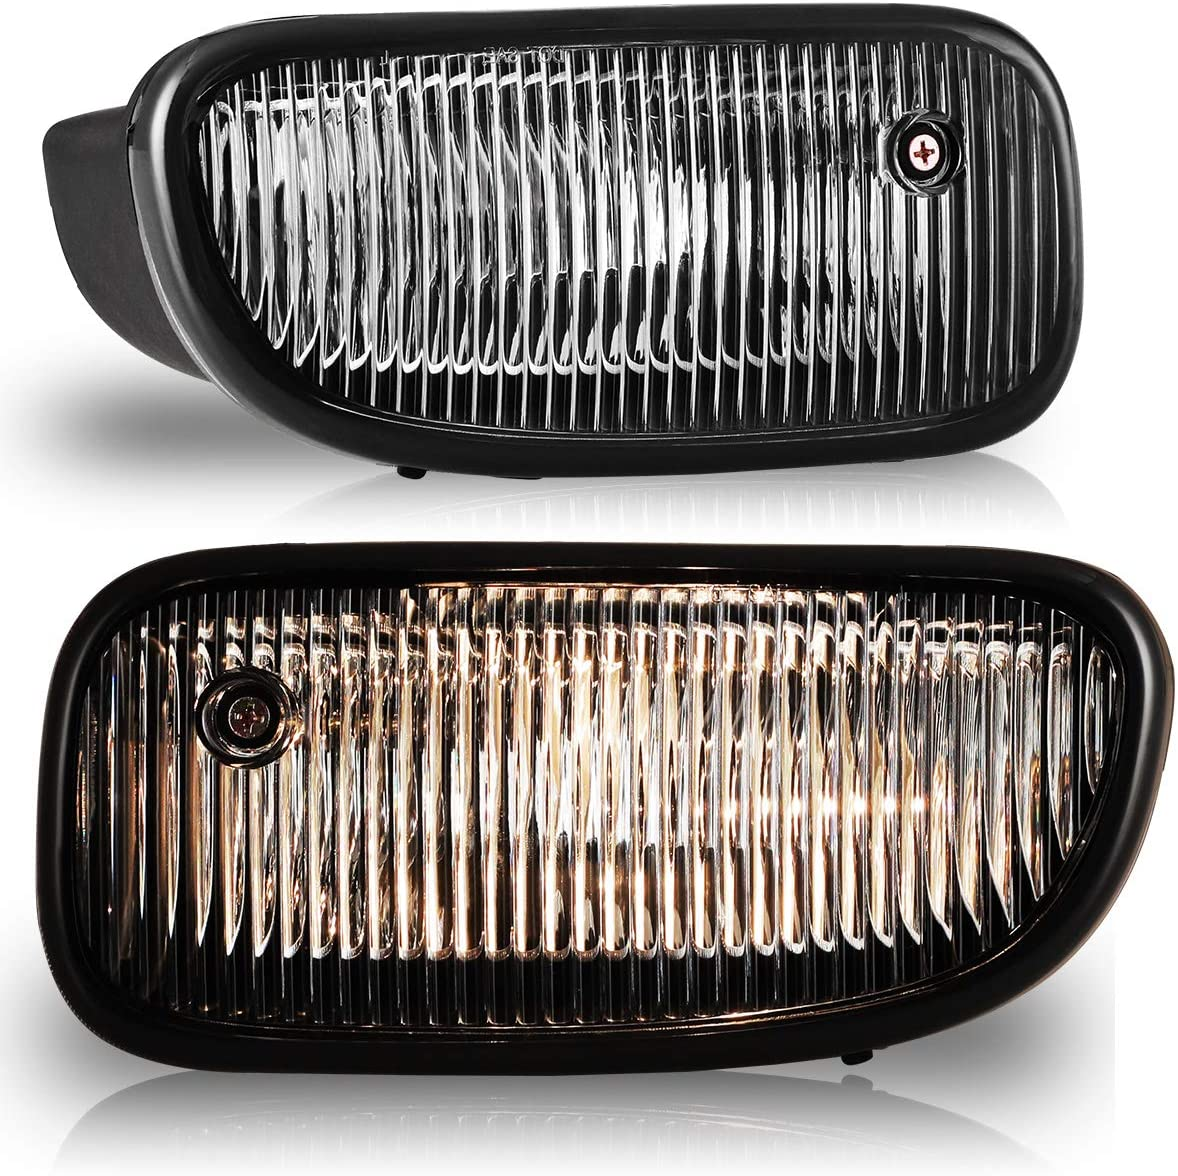 Fog Lights for 1999-2003 JEEP Grand Cherokee with Bulbs H12 12V53W AUTOFREE OEM Fog Lamps Replacement- 1 Pair(Clear Lens)